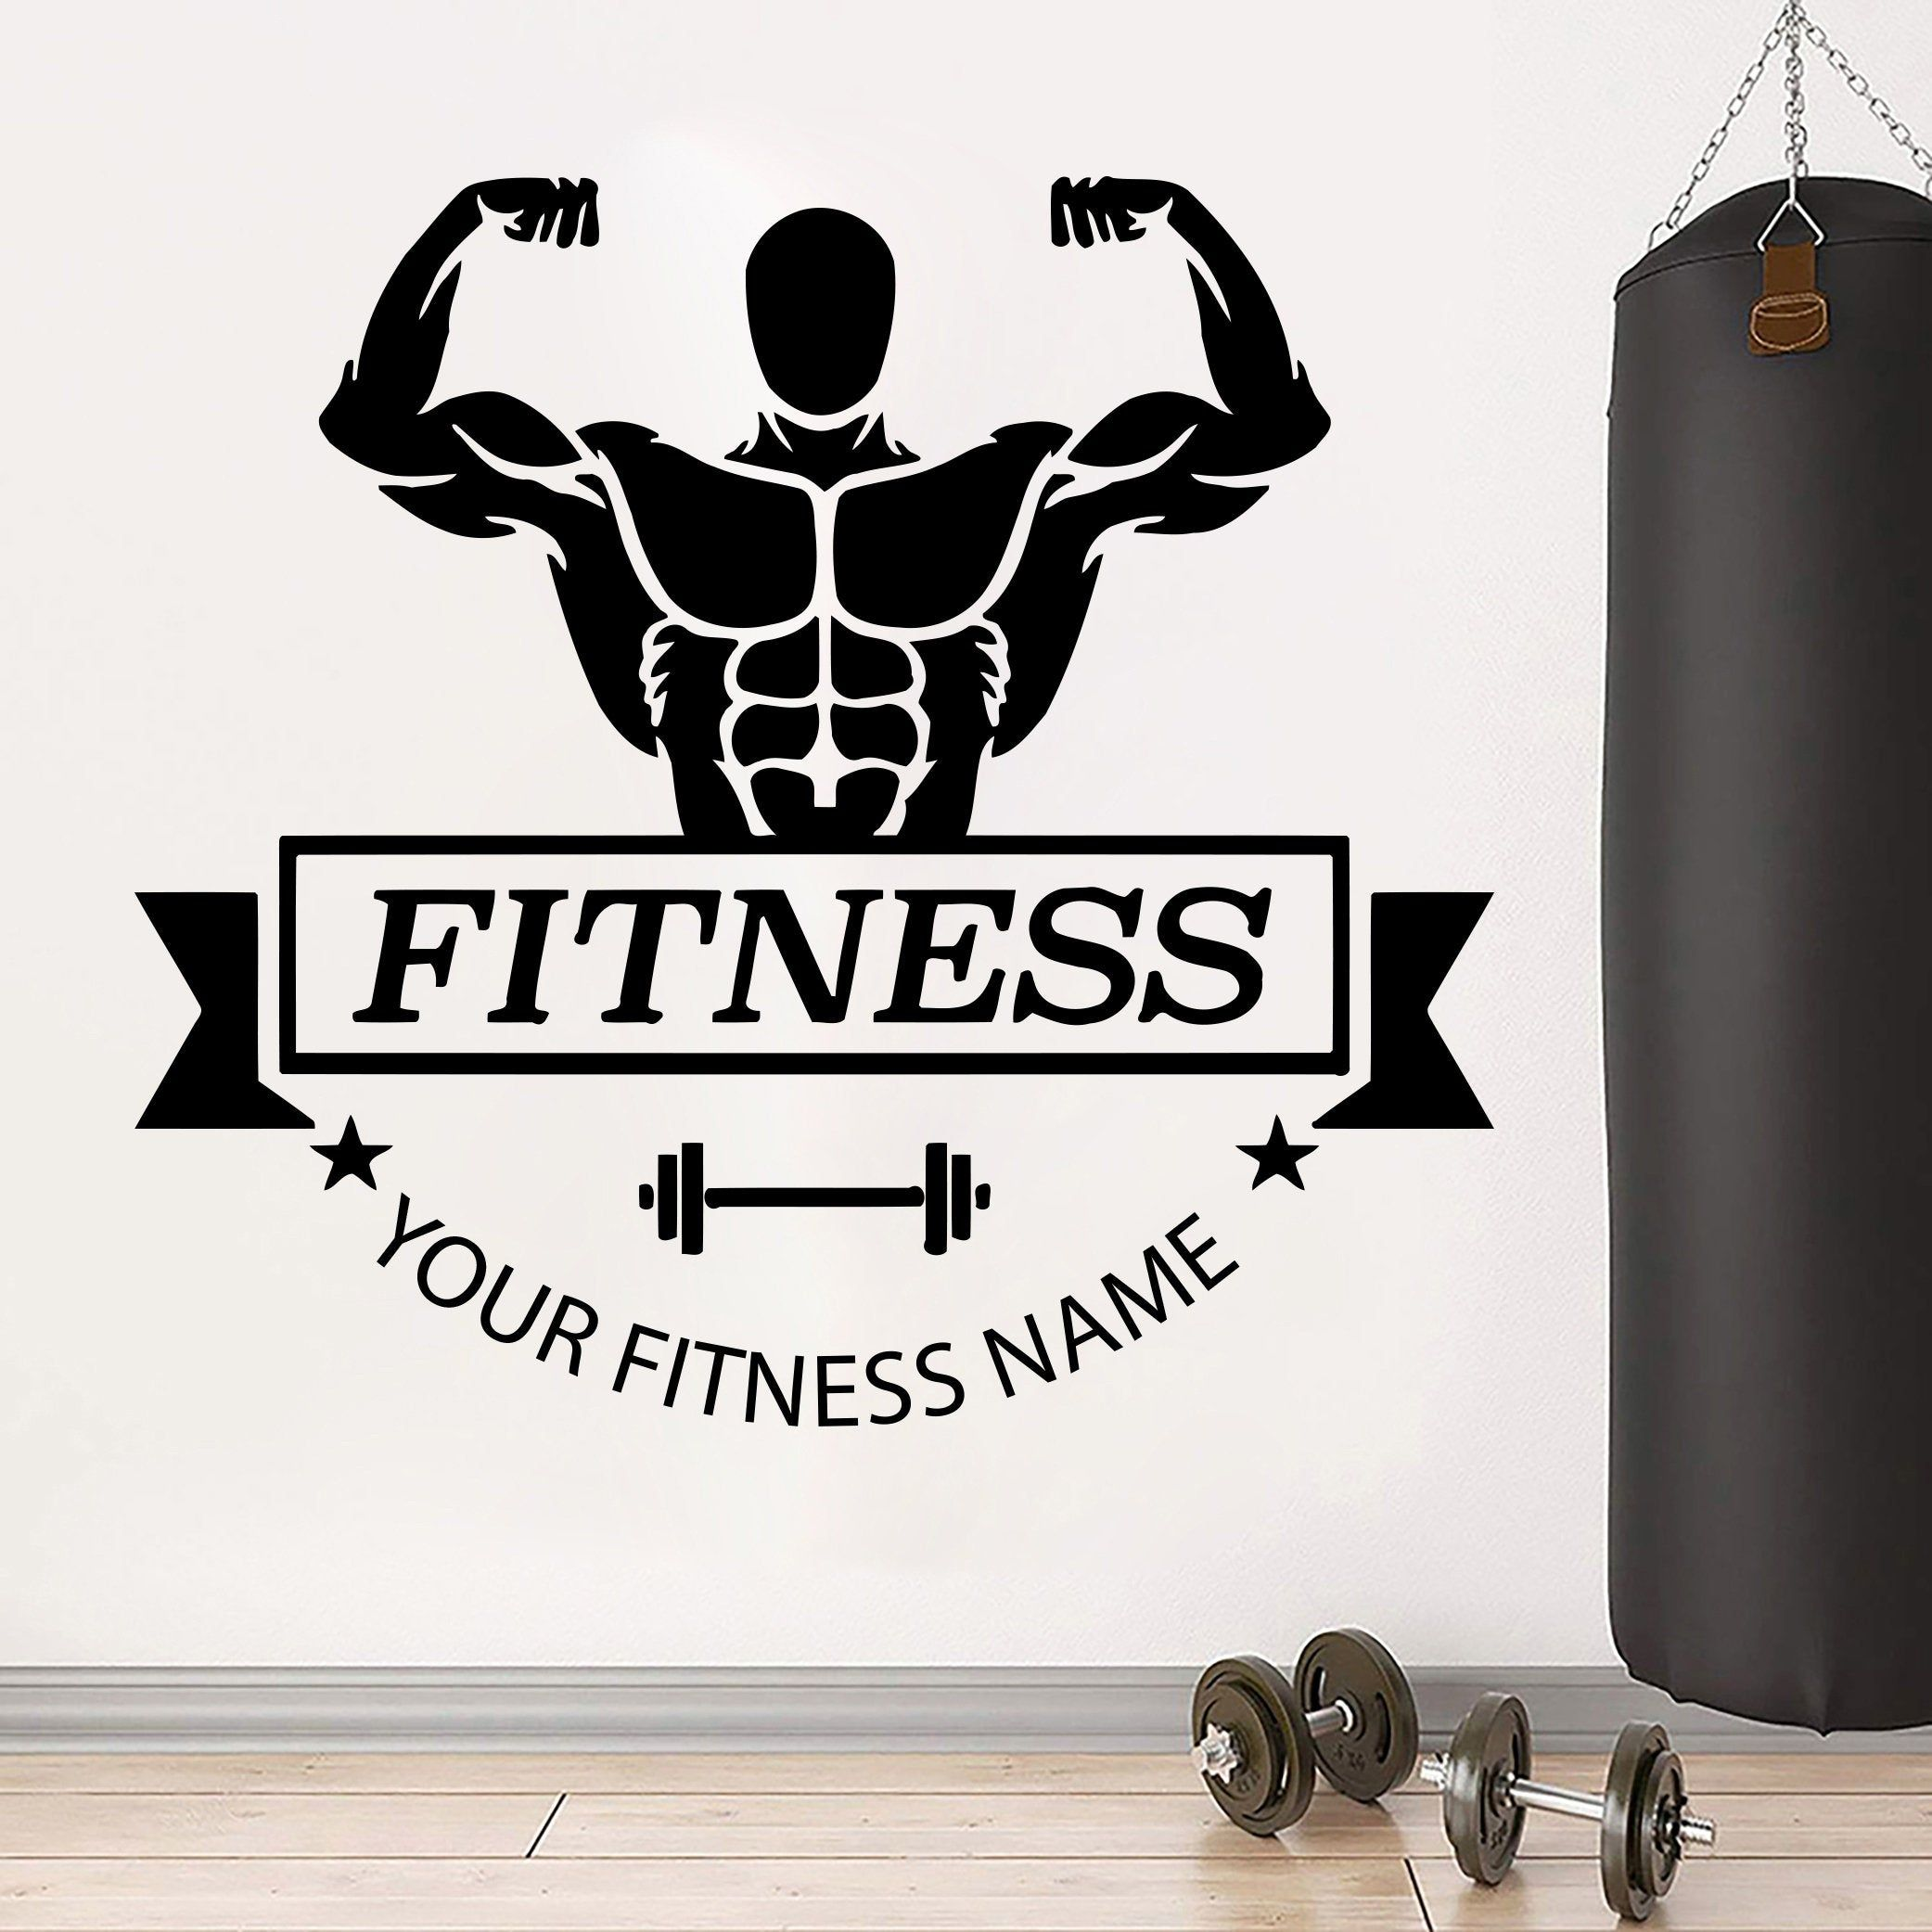 Fitness Decor Art Quotes Gym Stickers Fitness Wall Art Gifts Etsy Fitness Wall Art Wall Art Gift Motivational Sticker